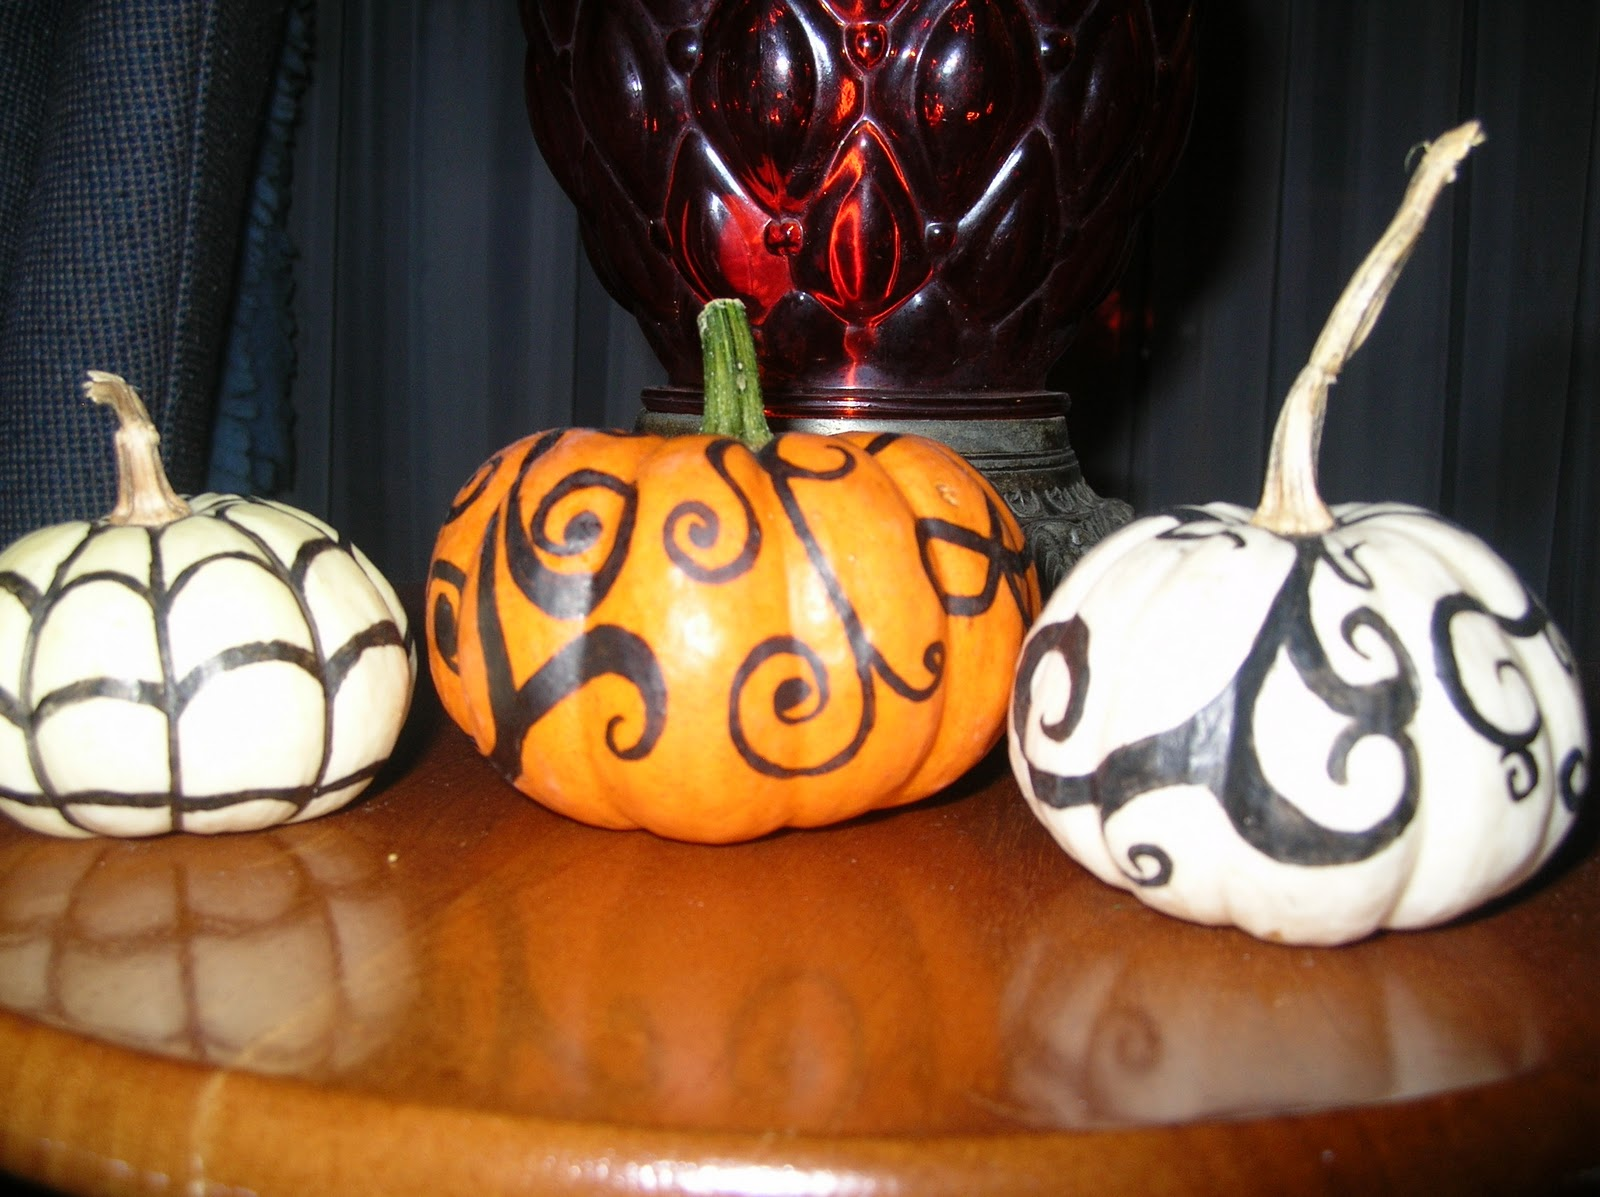 The Lonely Sock Halloween Pumpkin Decorating Project